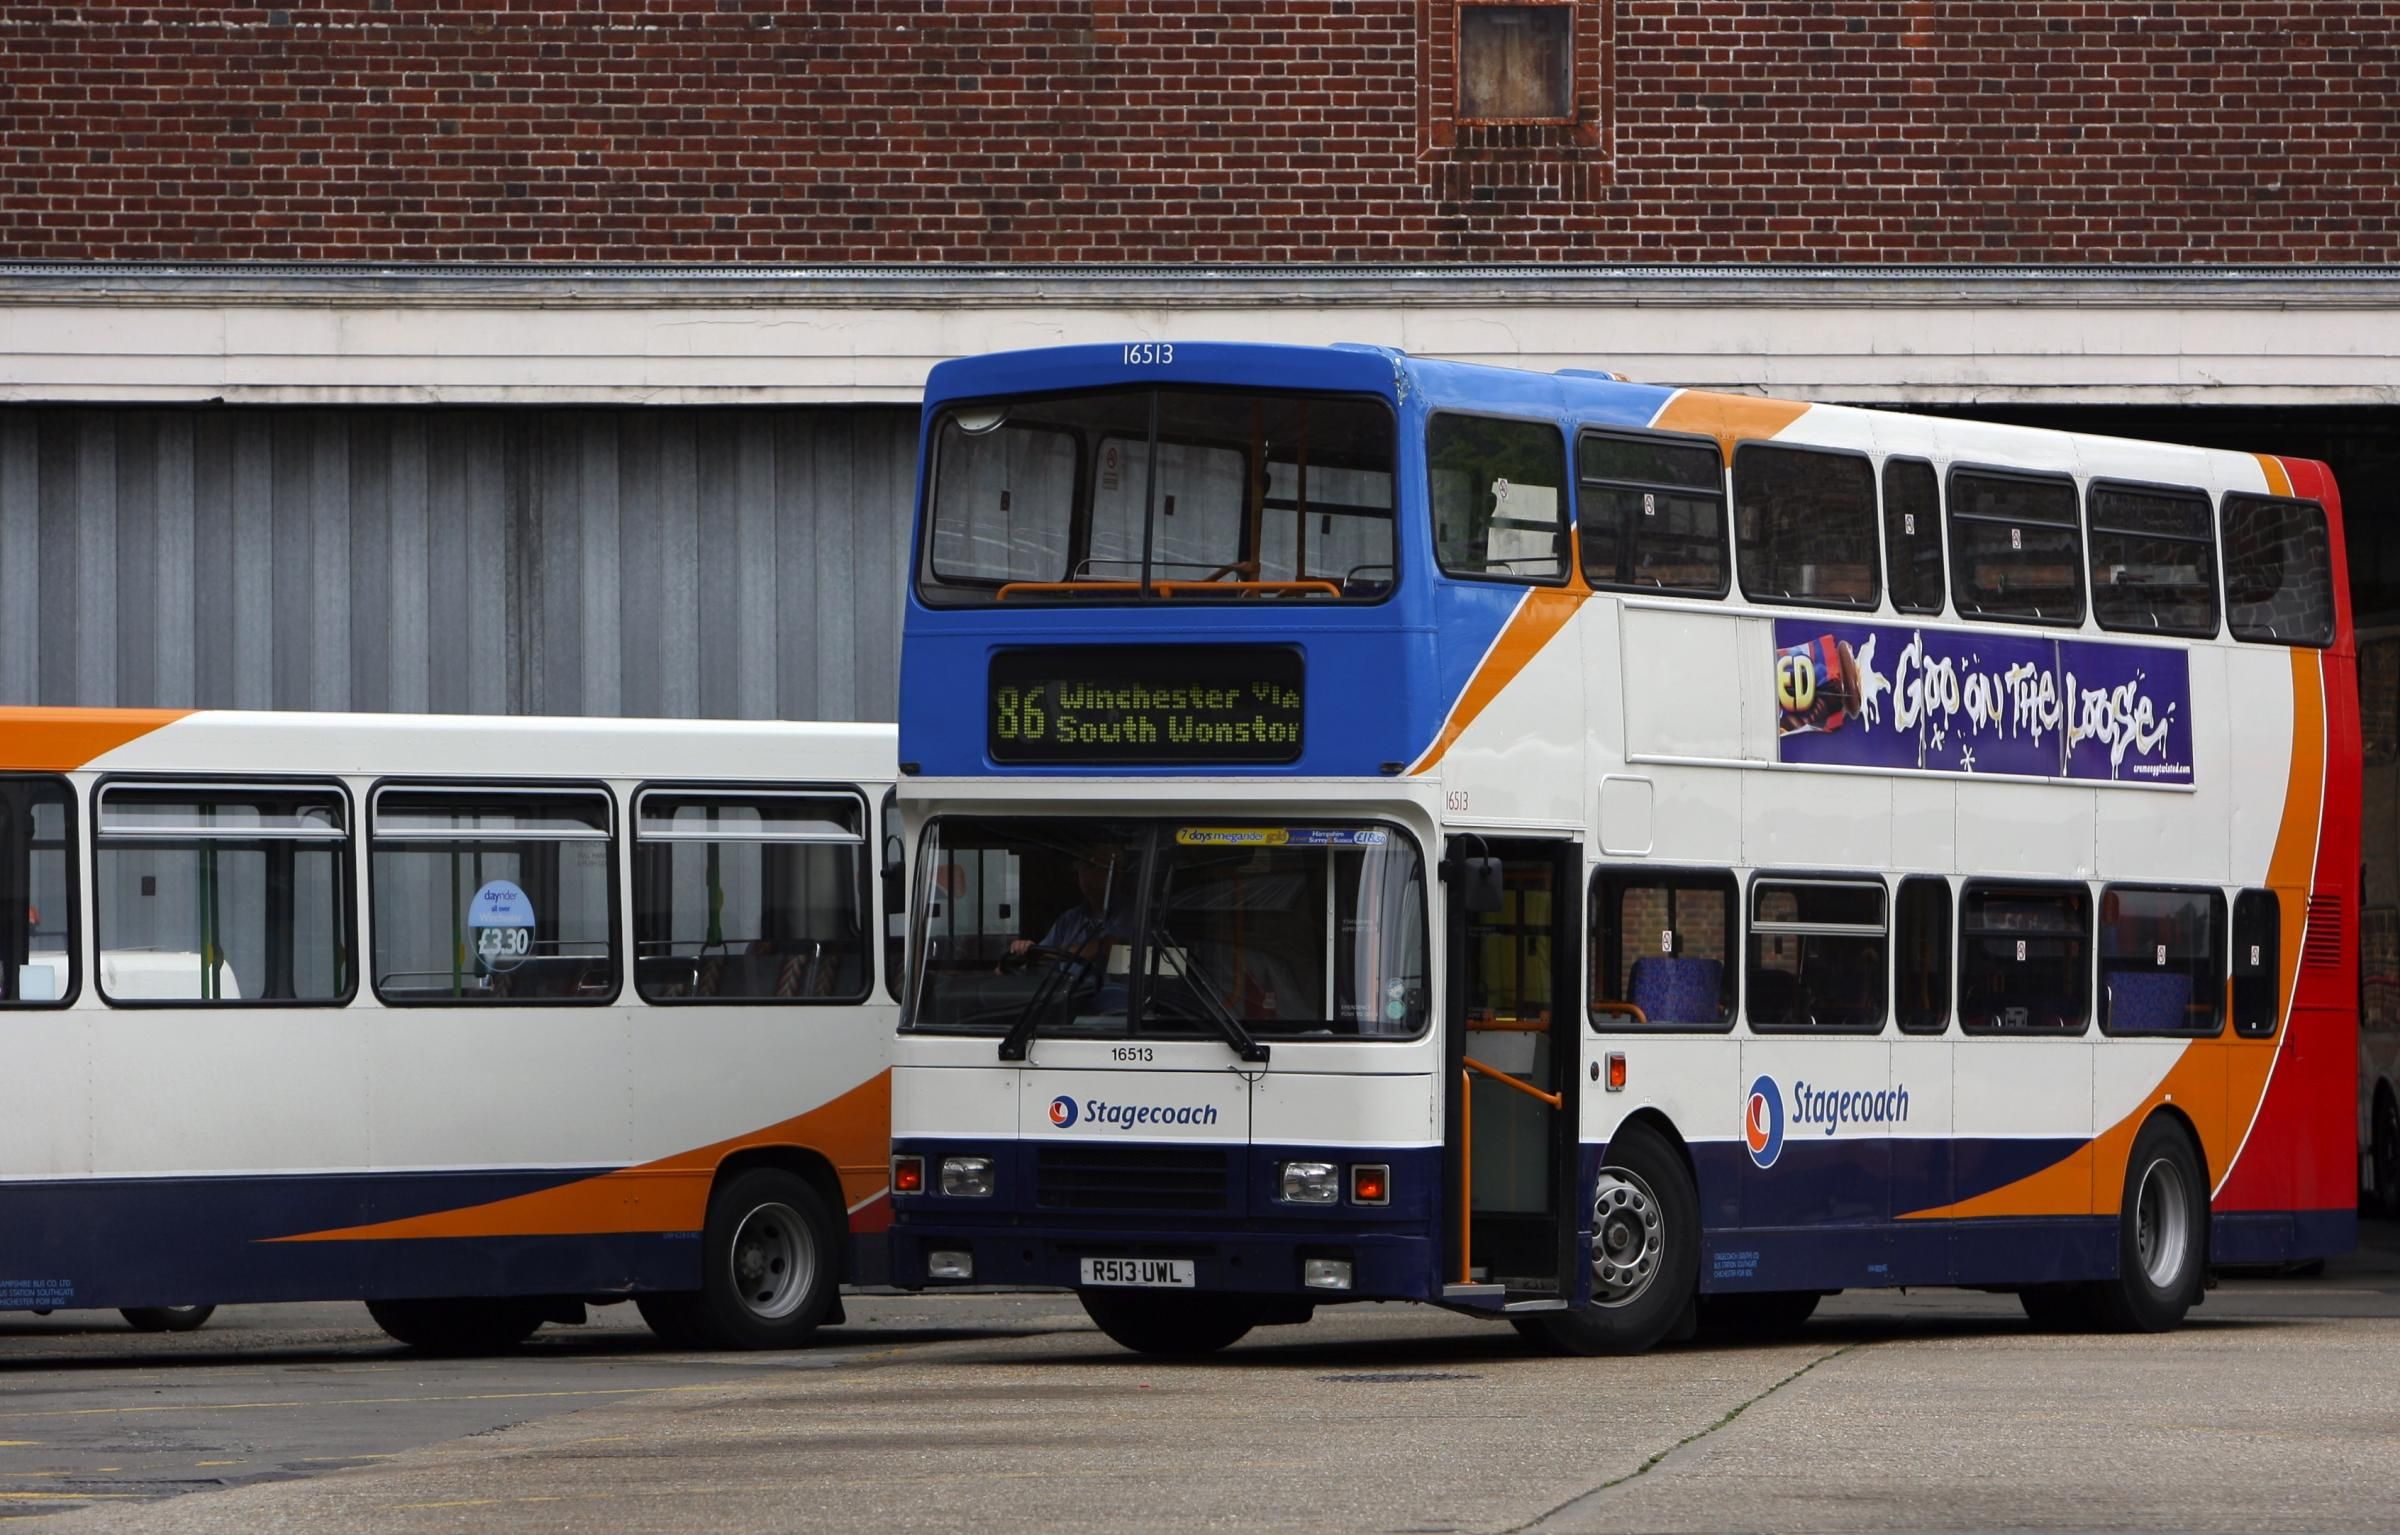 Have your say on Winchester bus station